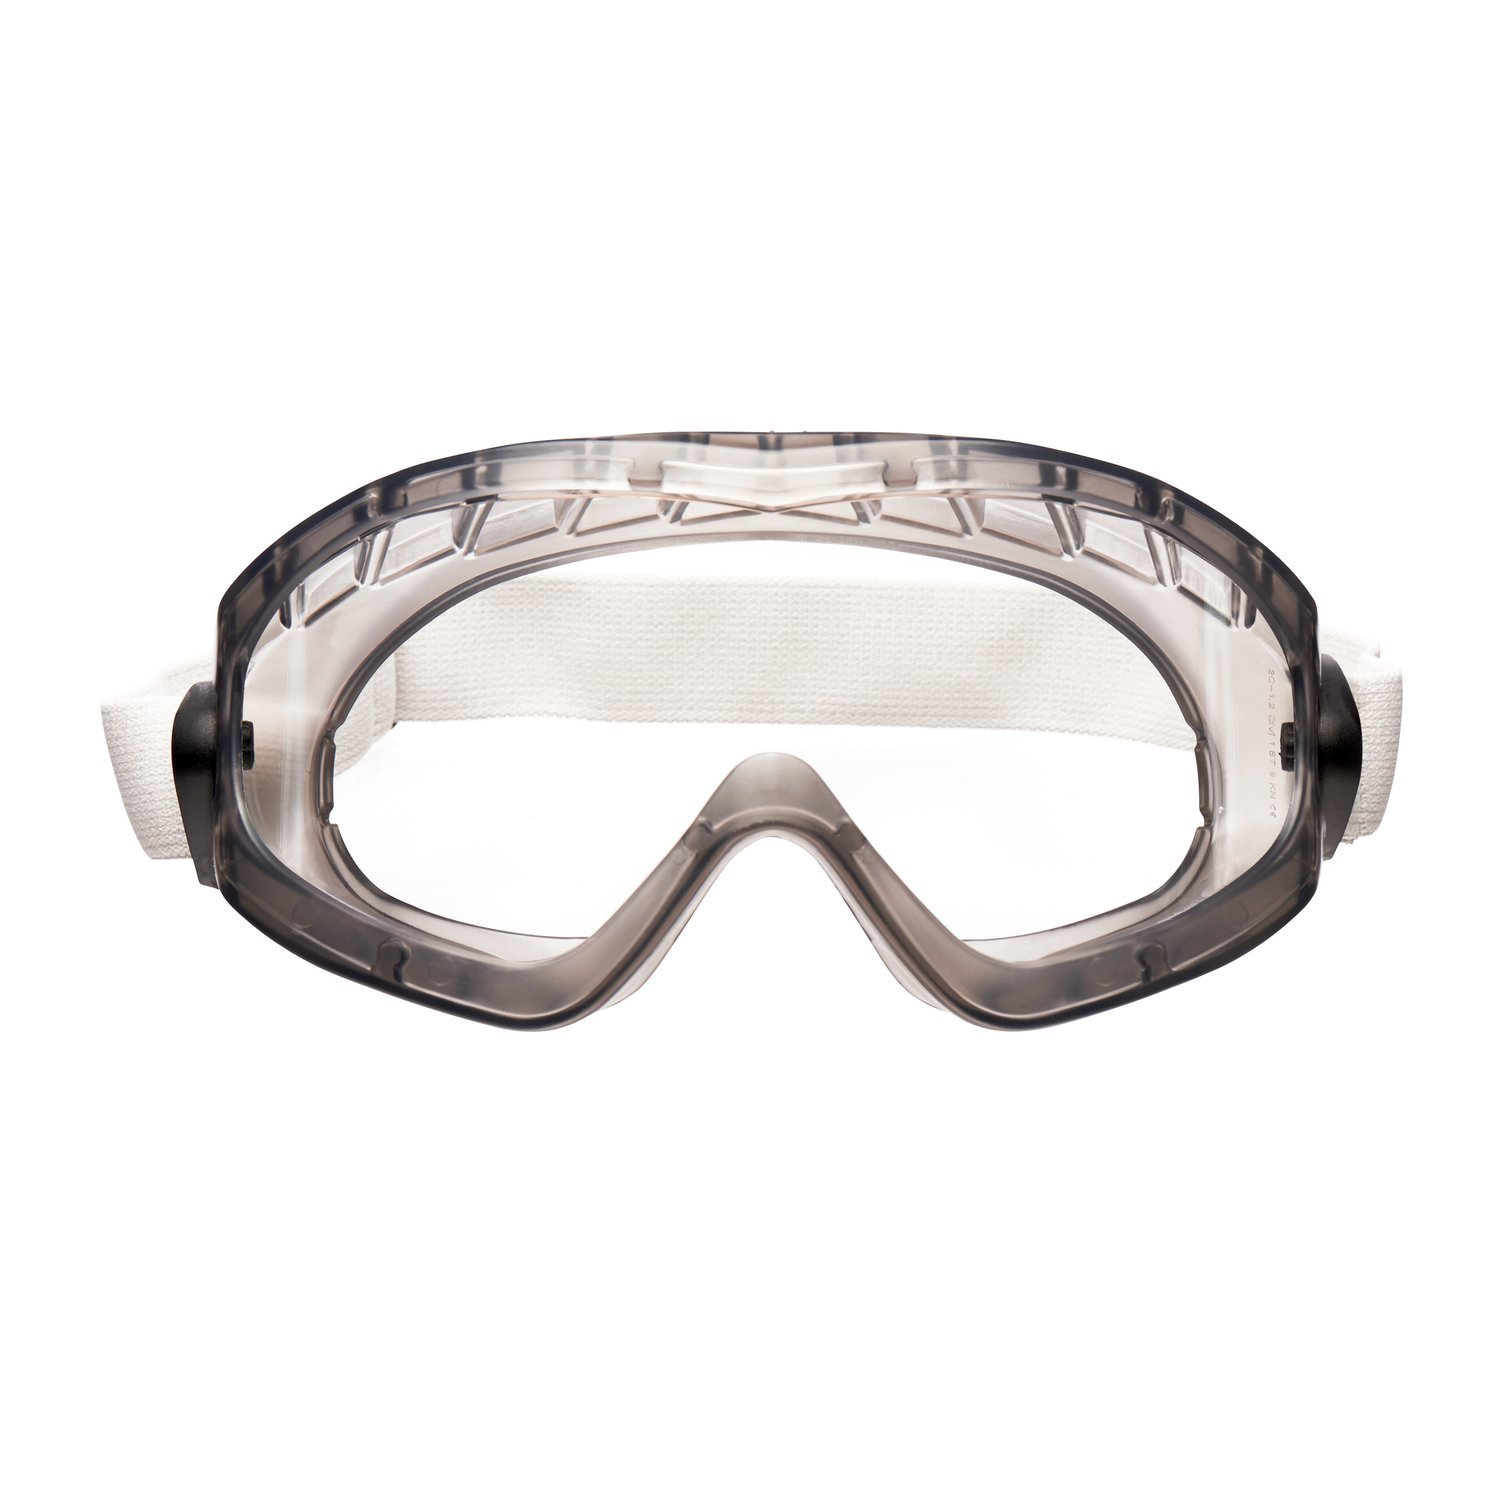 3M Safety Goggles, Sealed, Anti-Scratch / Anti-Fog, Clear Polycarbonate Lens, 2890S 3M Deutschland GmbH (IBG) (EU) DE272934071